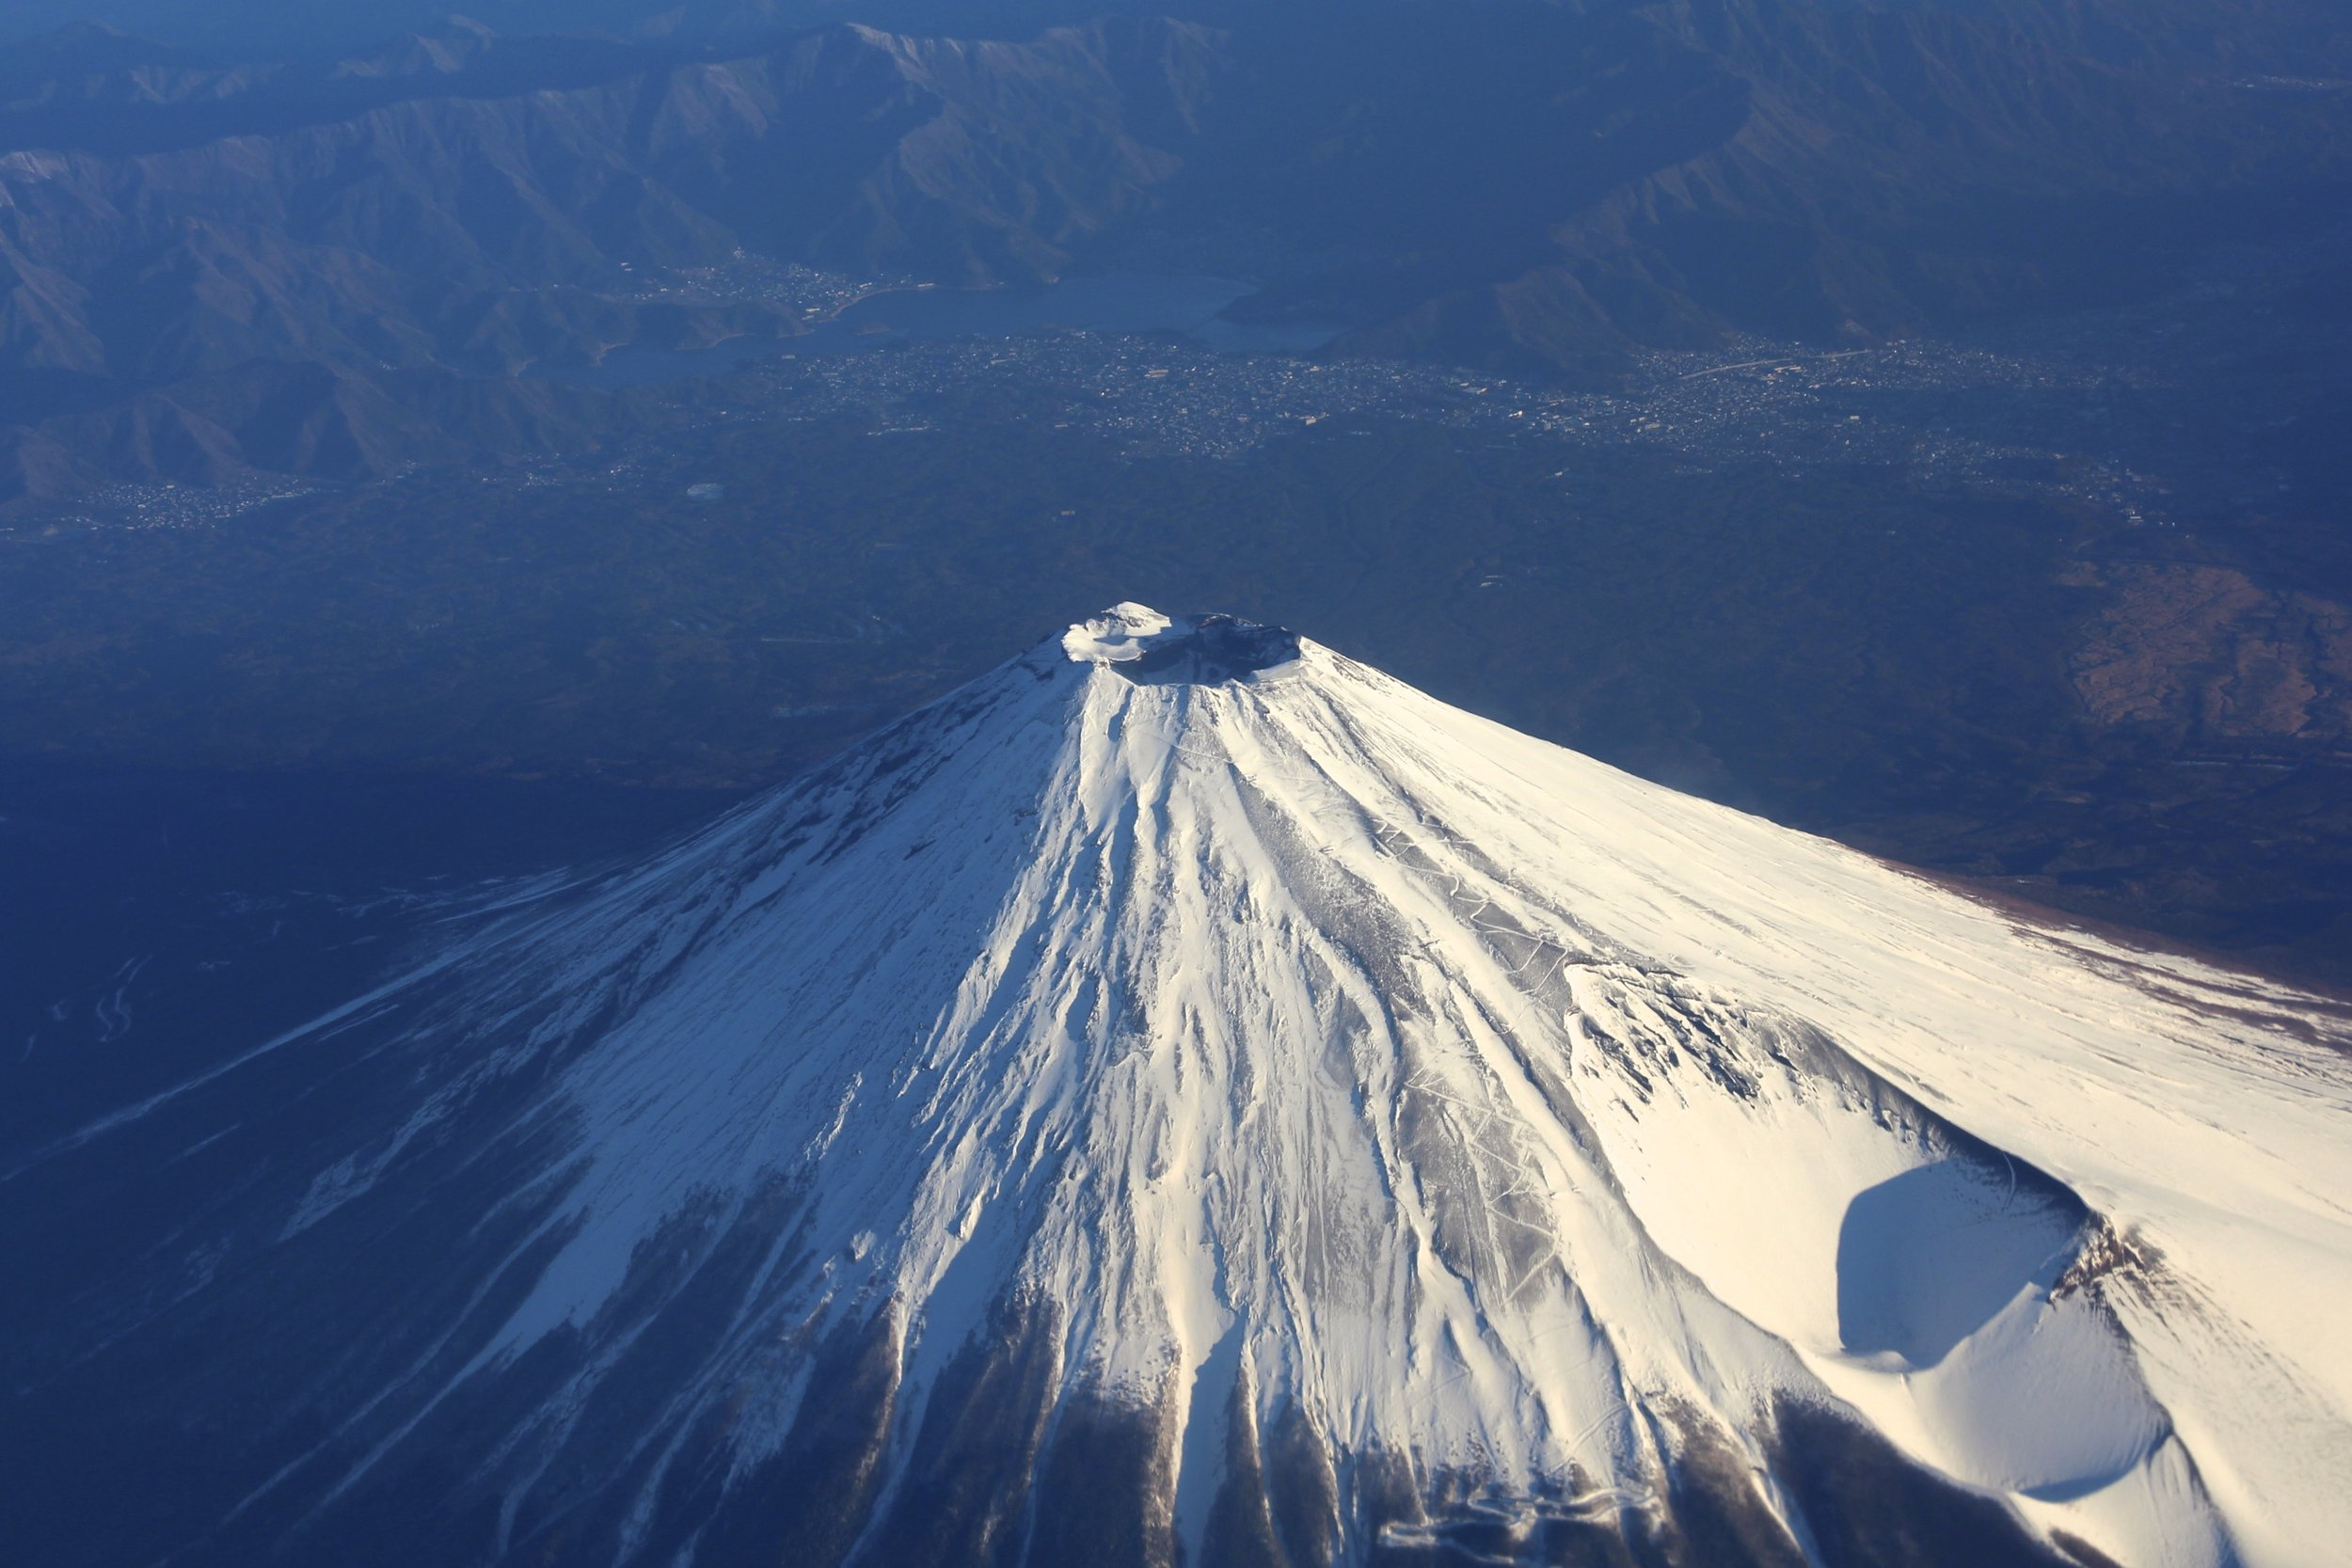 Mount Fuji as seen from airplane